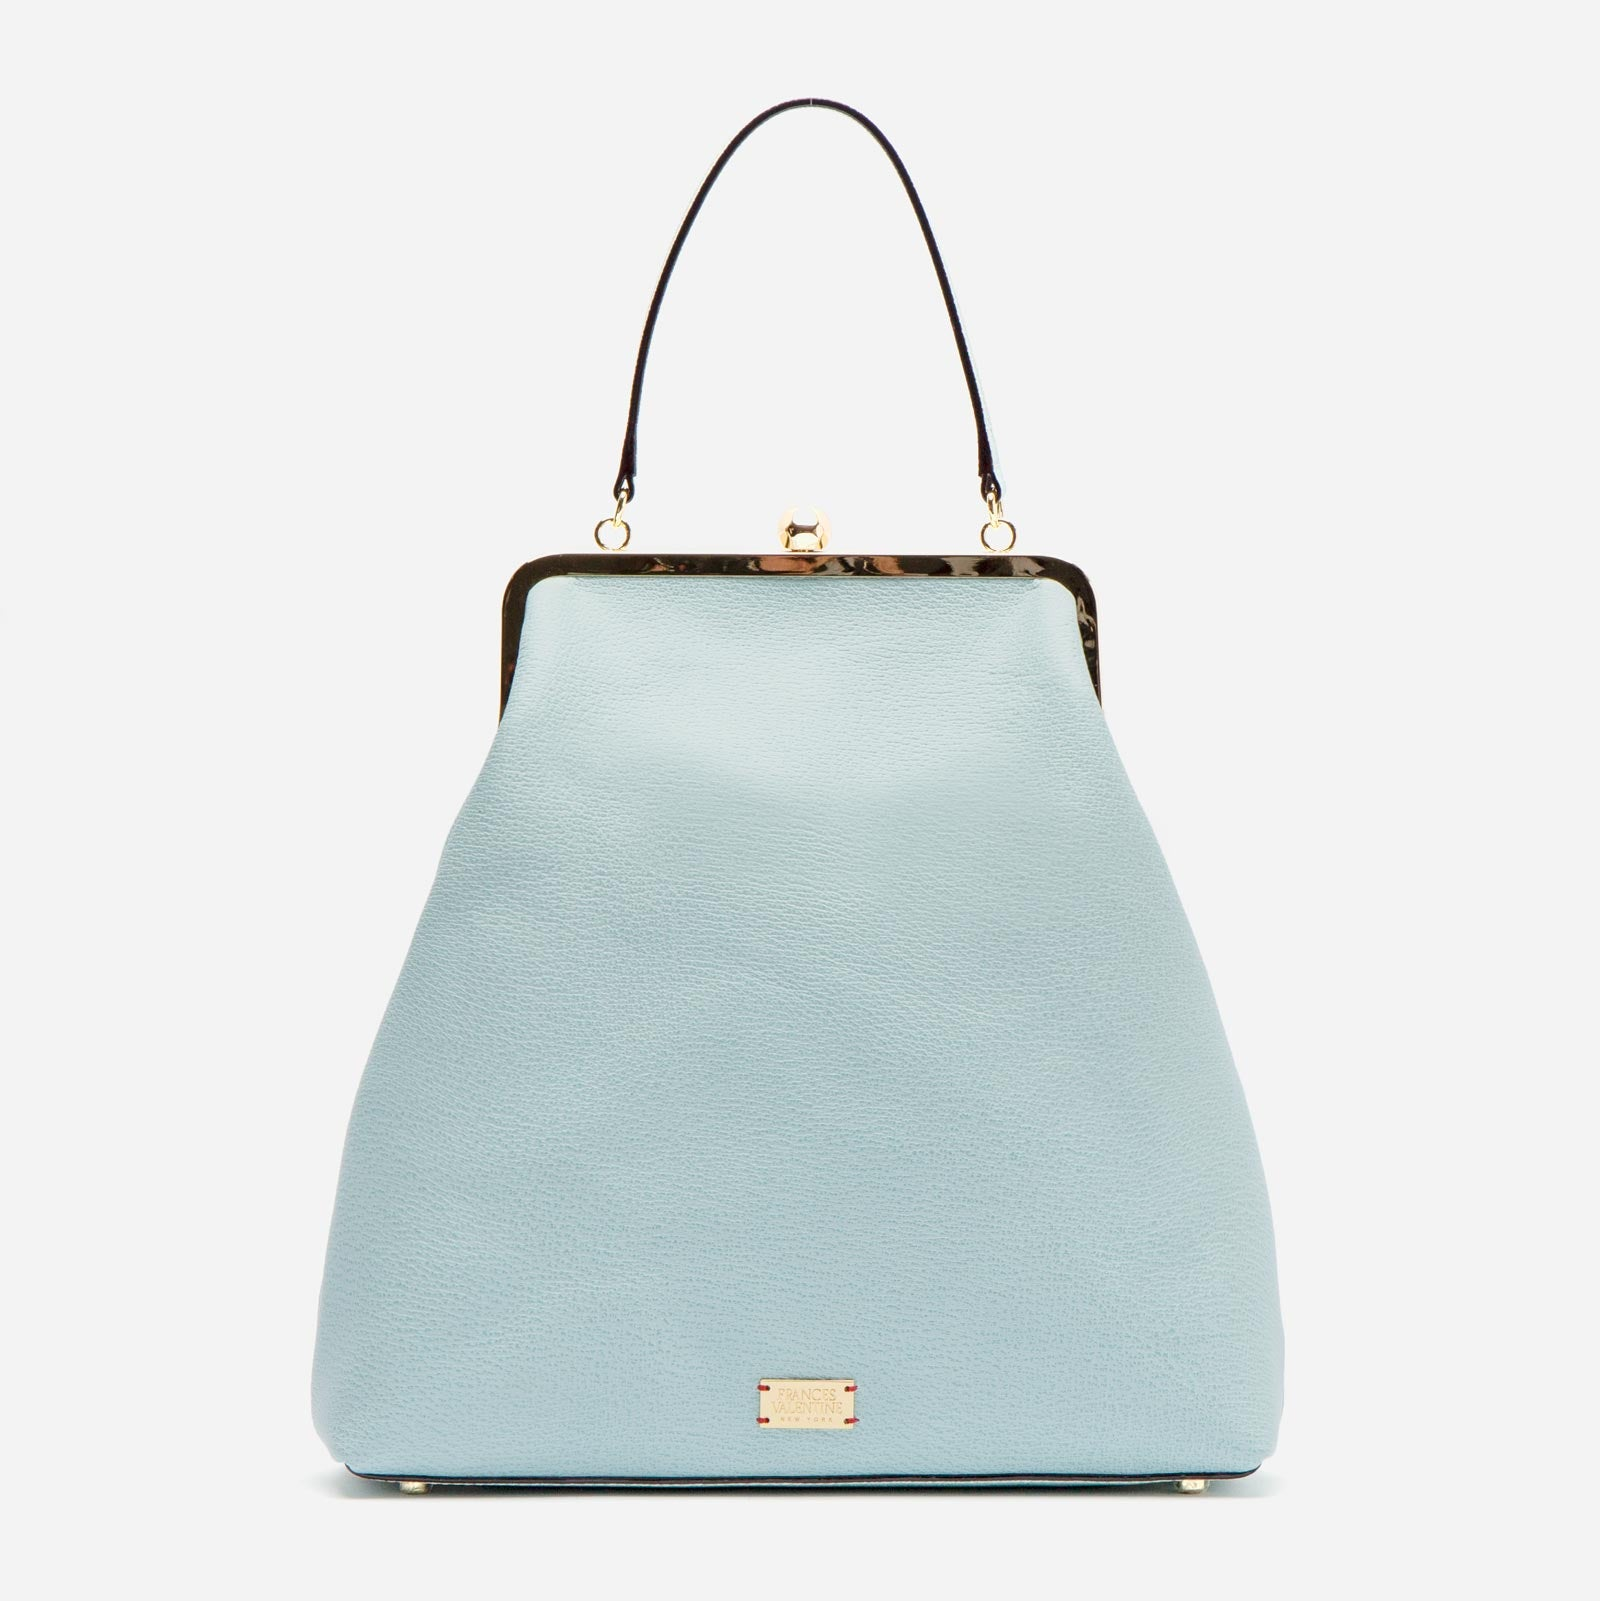 Caroline Frame Bag Boarskin Light Blue - Frances Valentine